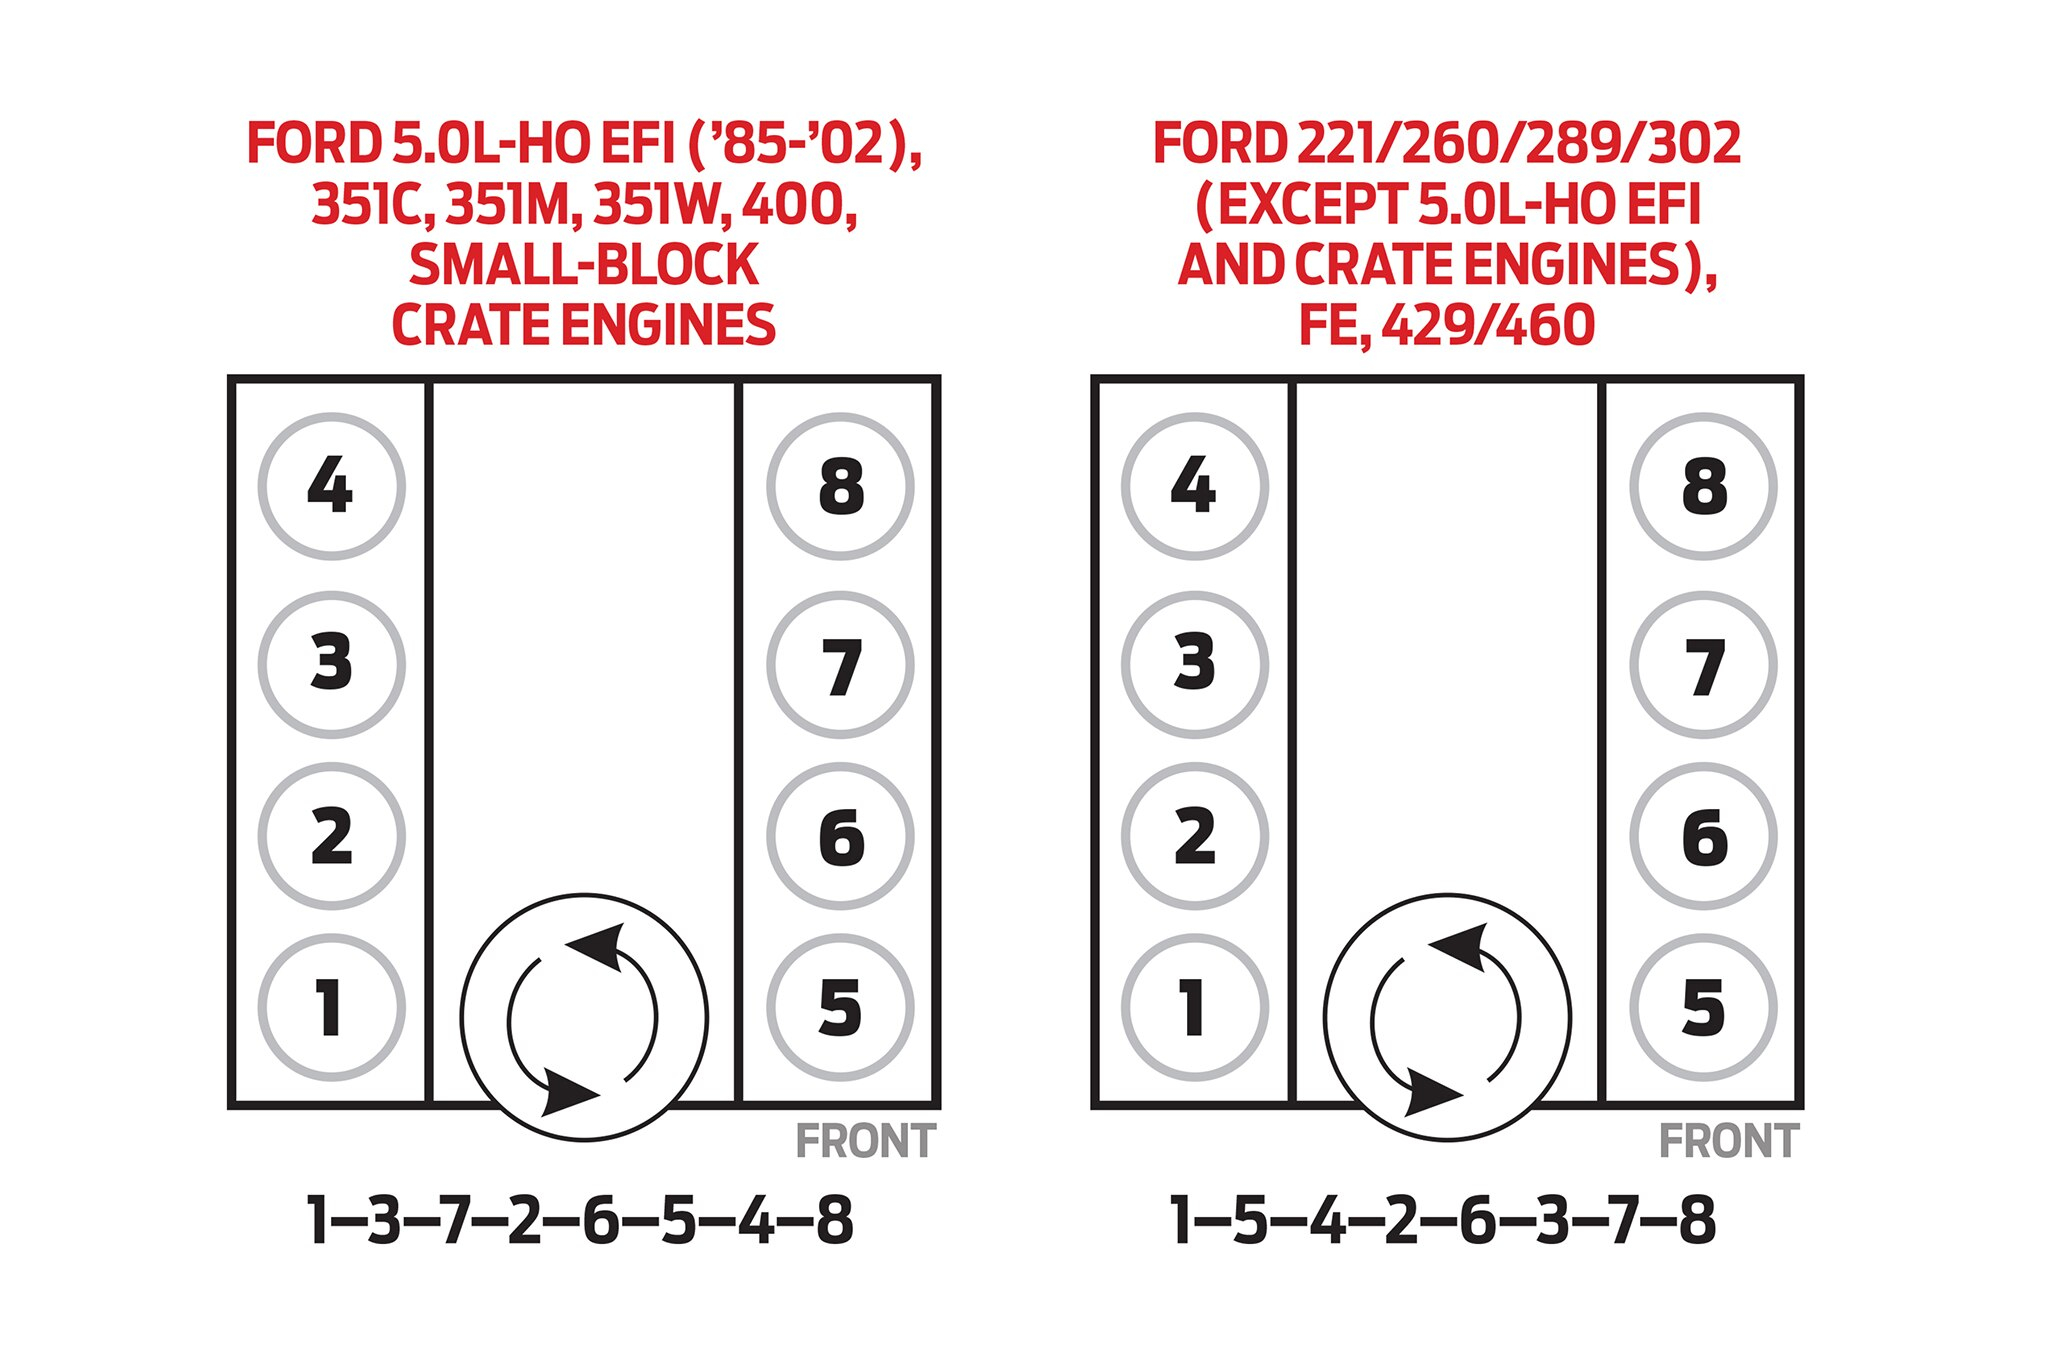 Kd_3060] Ford F 150 4 6 Engine Diagram Together With Engine